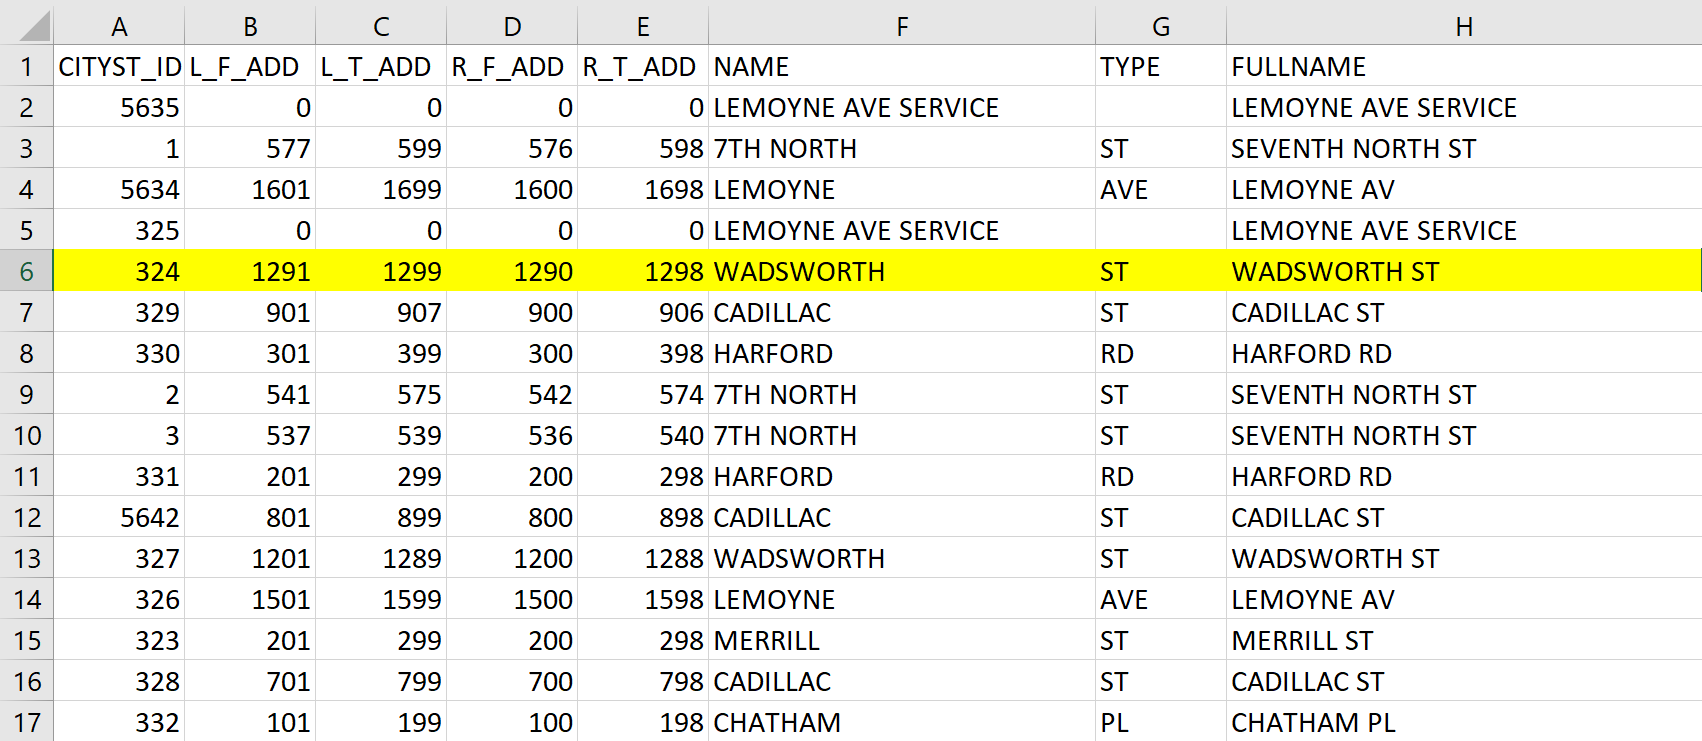 The street address for each corner is created by the combination of L_F_ADD/R_F_ADD/L_T_ADD/R_T_ADD + NAME + TYPE columns in the KML file. For example L_F_ADD's address for the CITYST_ID 324 is 1291 Wadsworh ST.